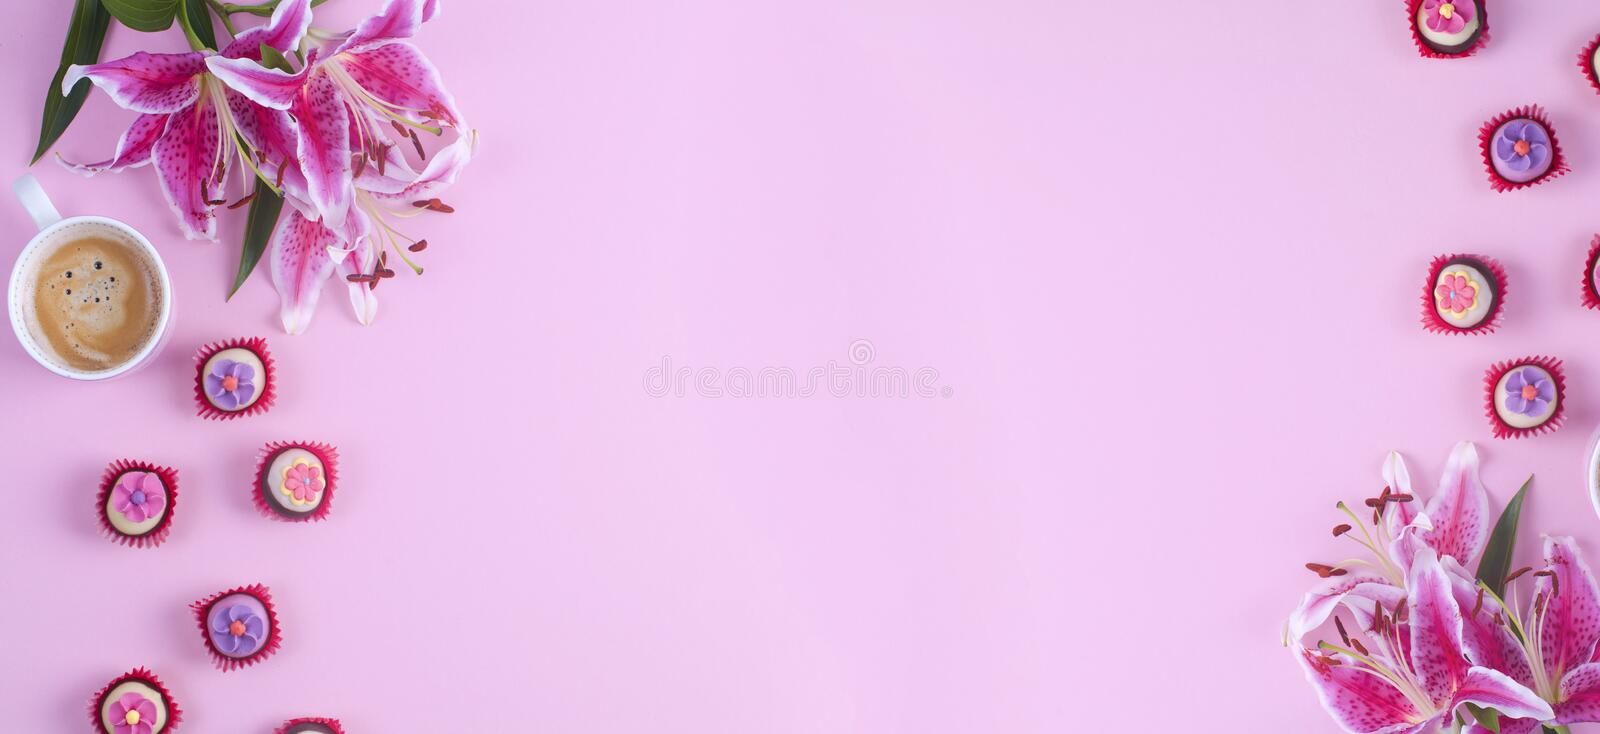 Morning cup of coffee, sweet, flower on pink table from above. Beautiful breakfast. Flat lay style. Banner. Place for text royalty free stock photography